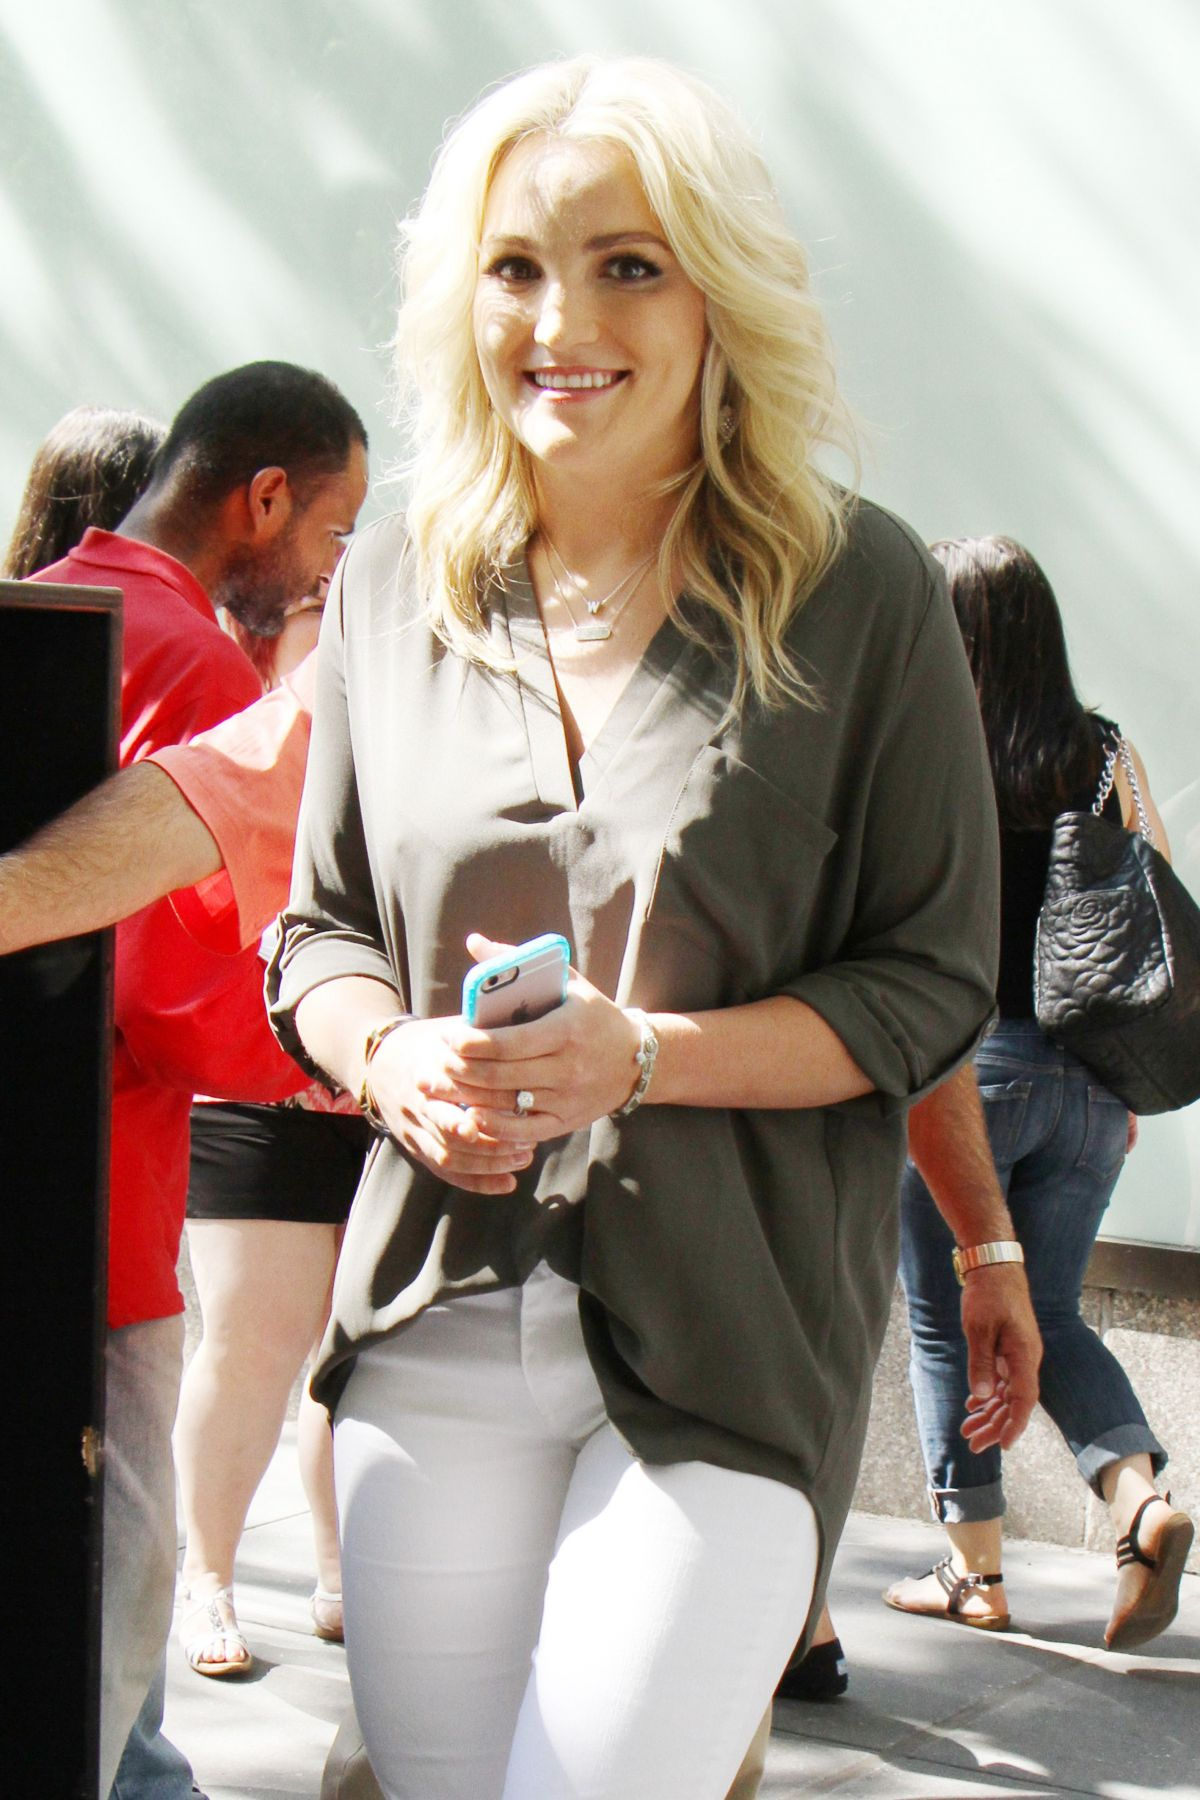 JAMIE LYNN SPEARS at The Today Show in New York 06/22/2016